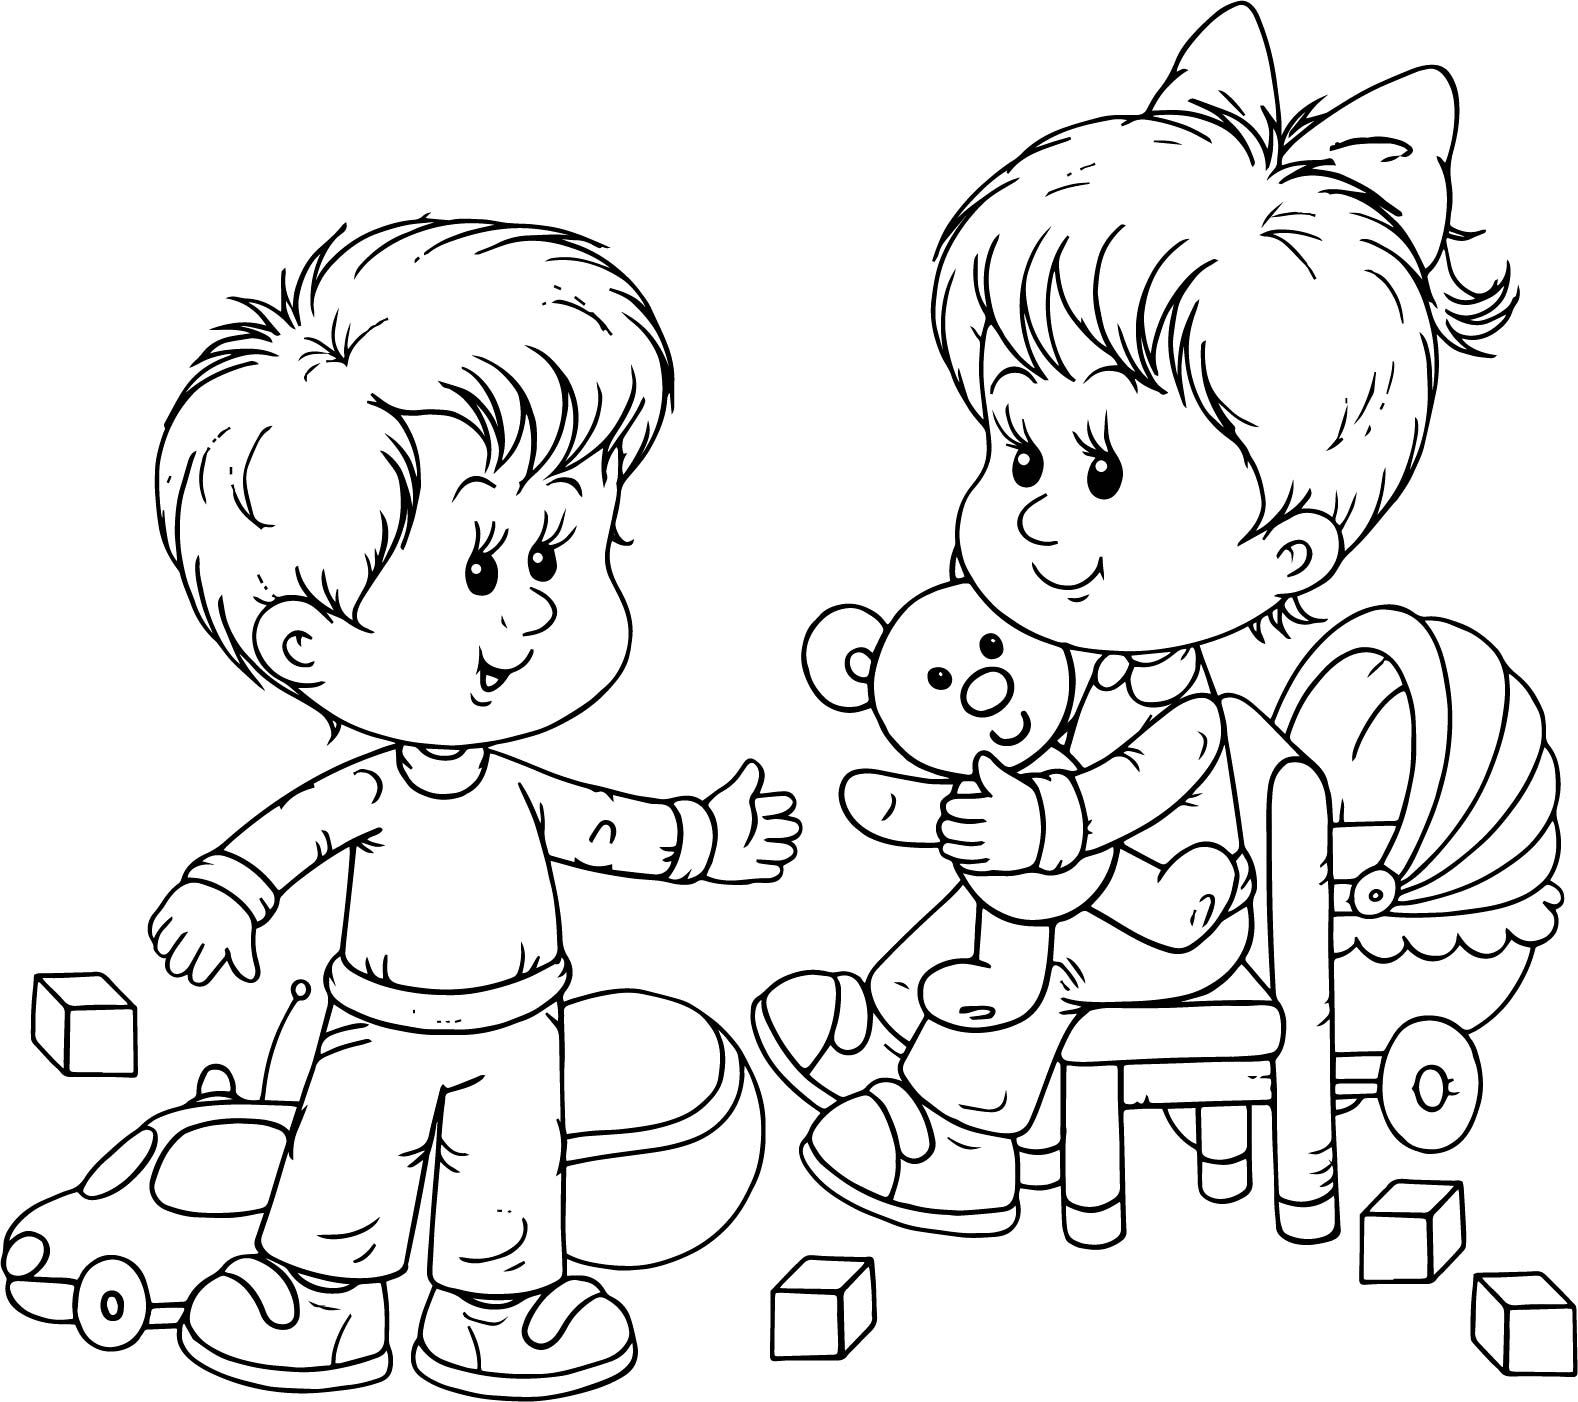 Preschool Boy And Girl Playing Toys Coloring Page